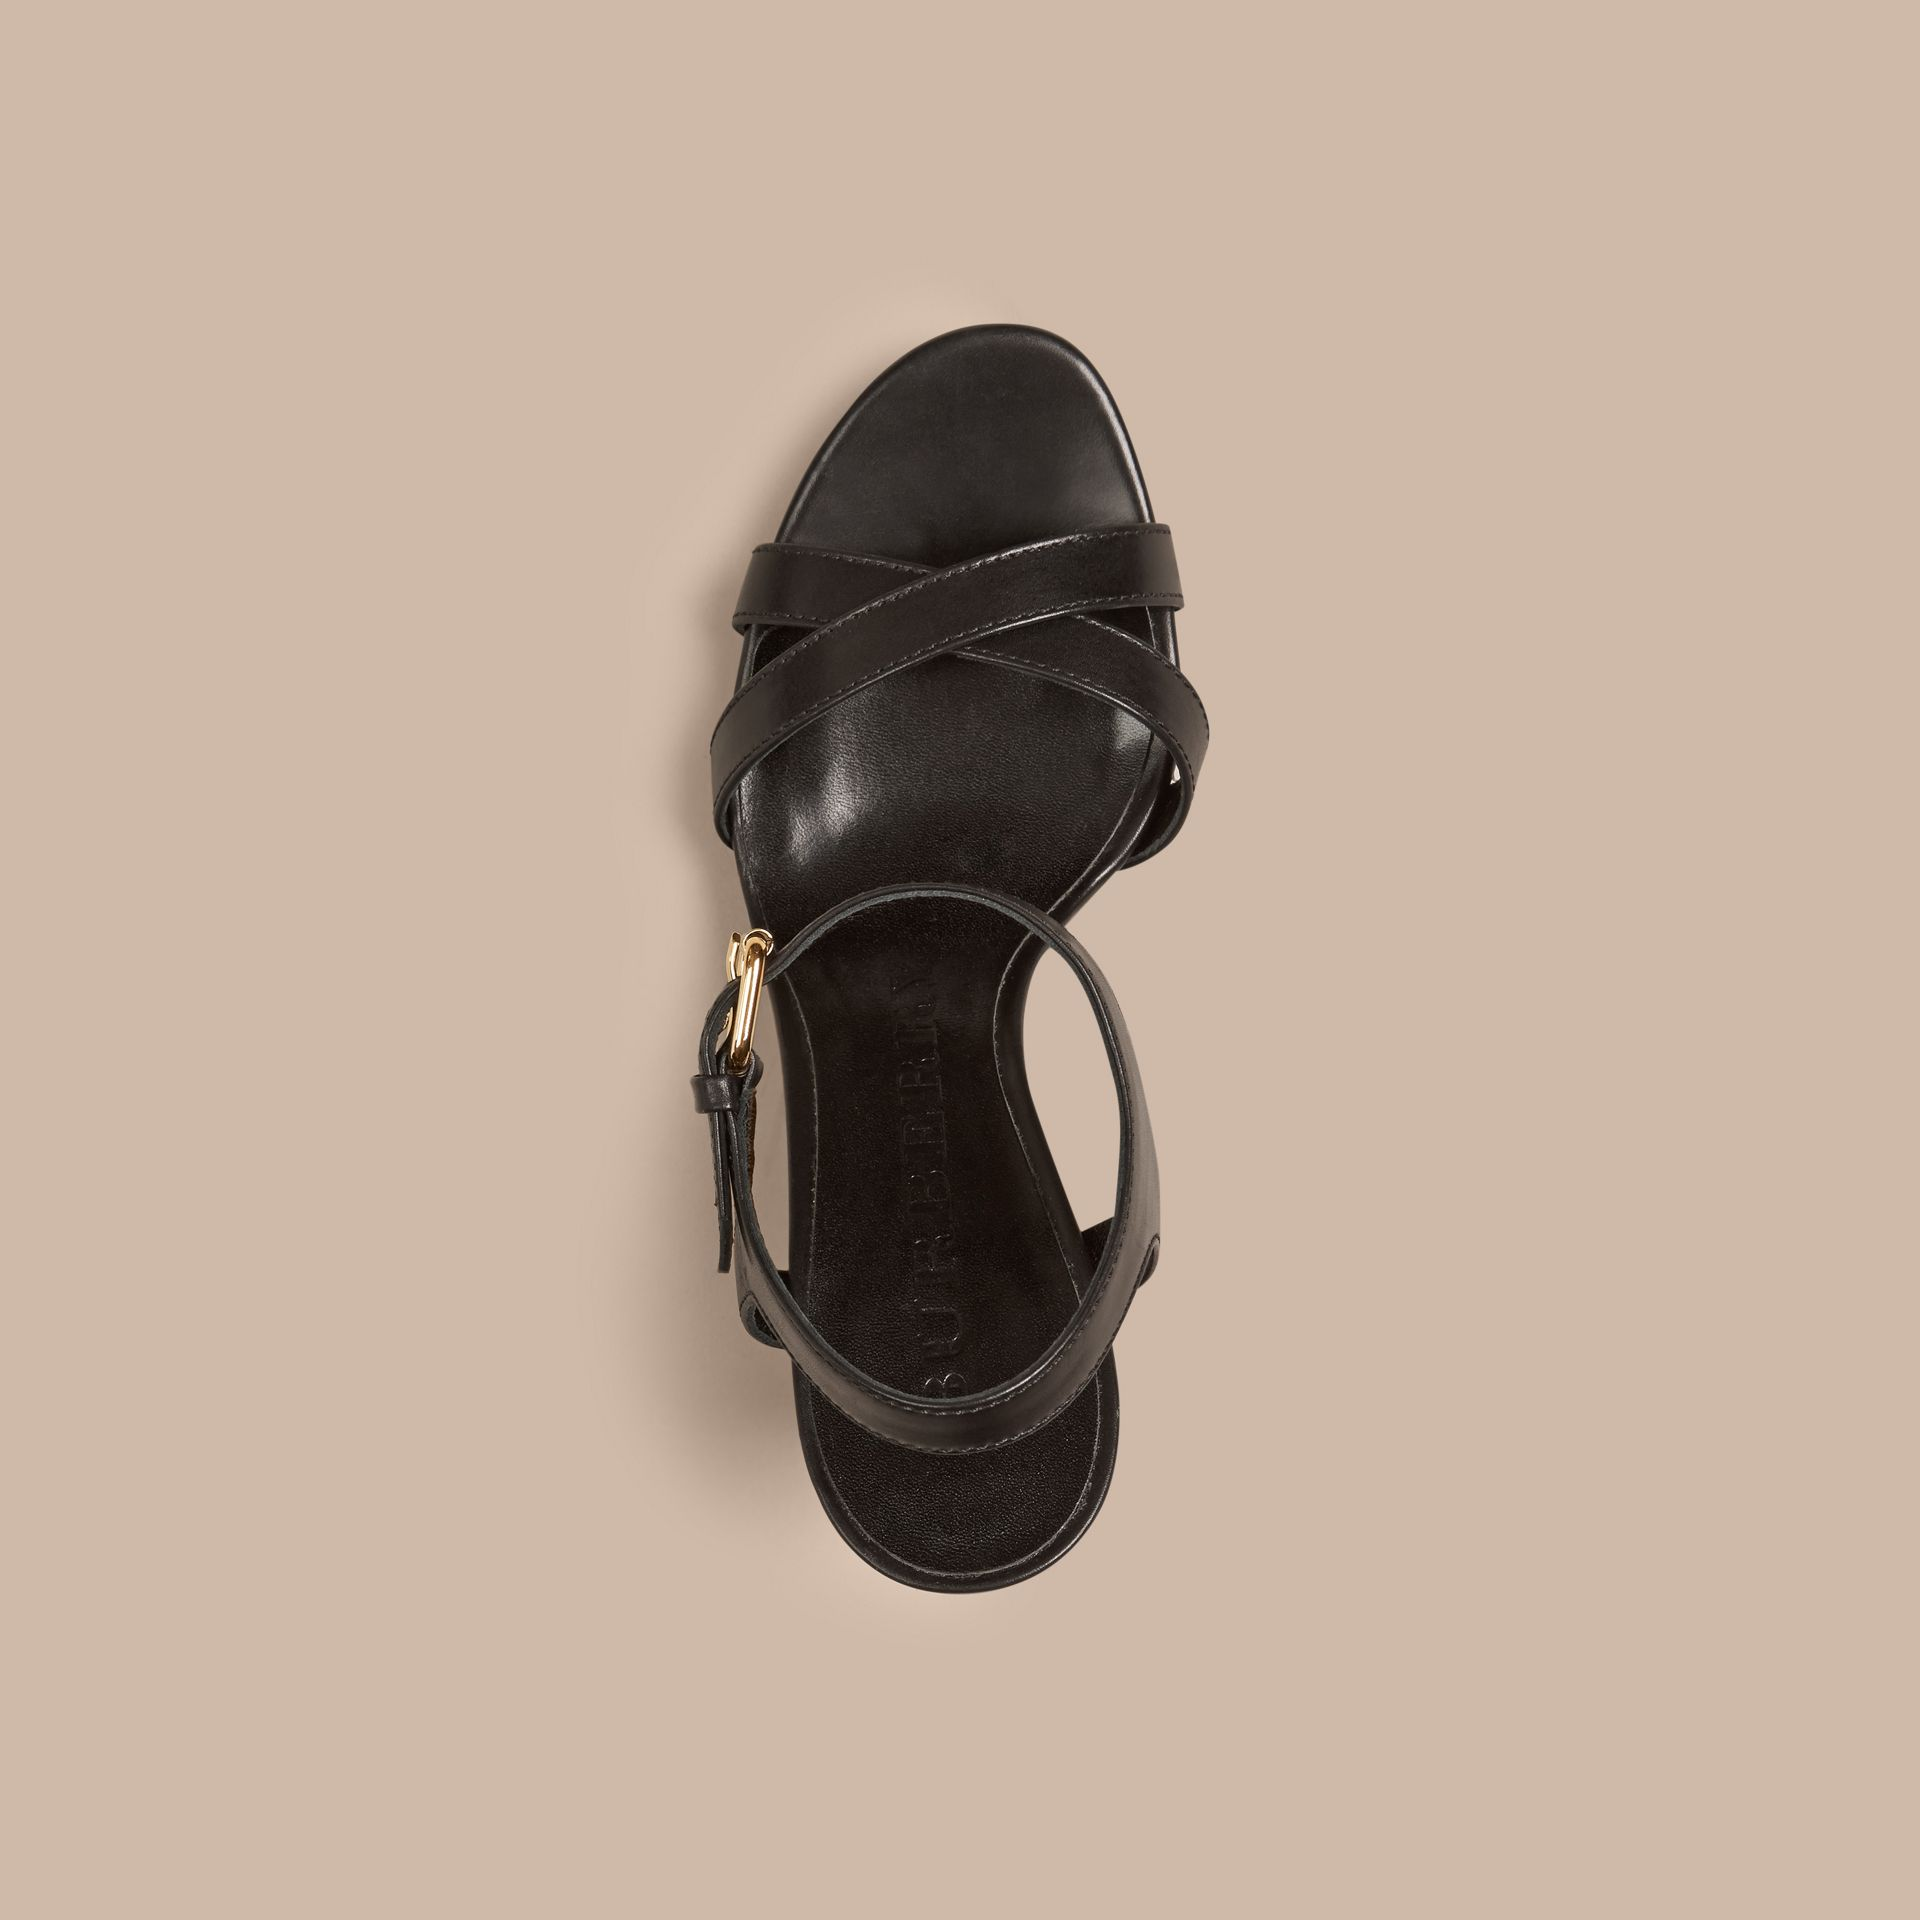 House Check and Leather Wedge Sandals in Black - Women | Burberry Canada - gallery image 4